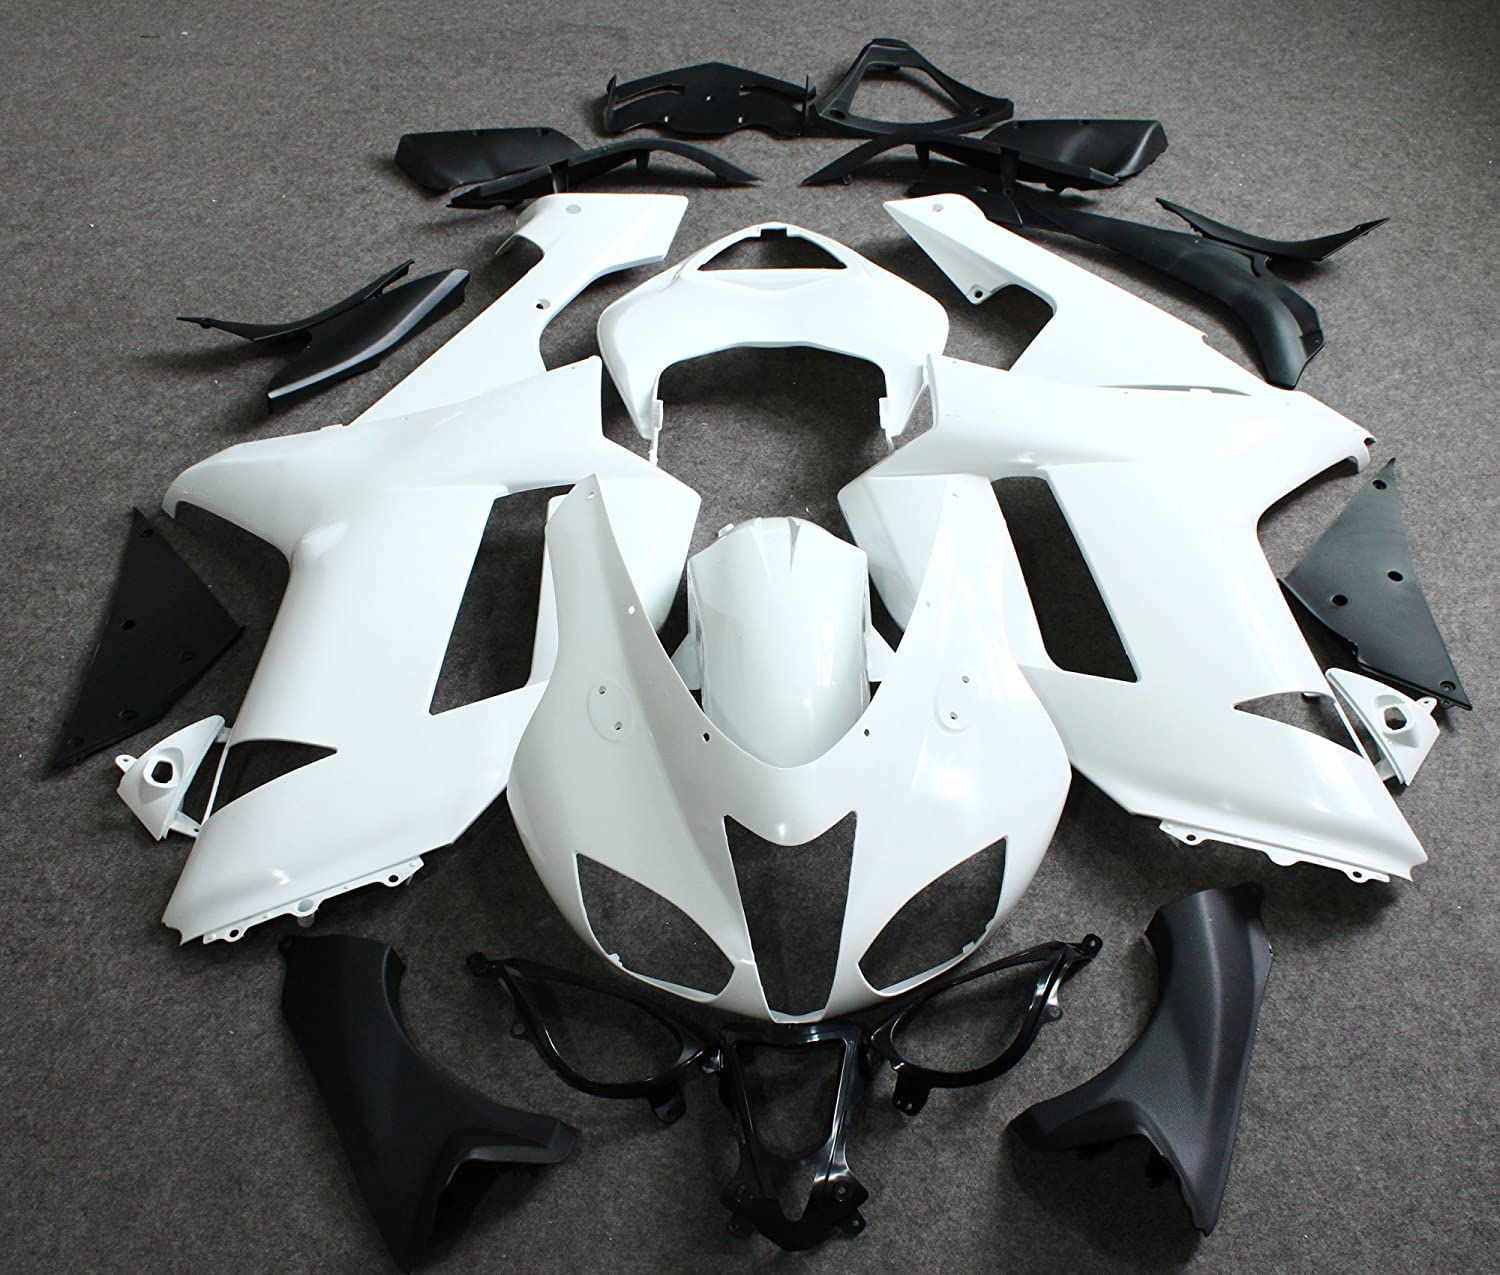 ZXMOTO Unpainted Fairing Kit for Kawasaki Ninja 636 ZX-6R (2007-2008)